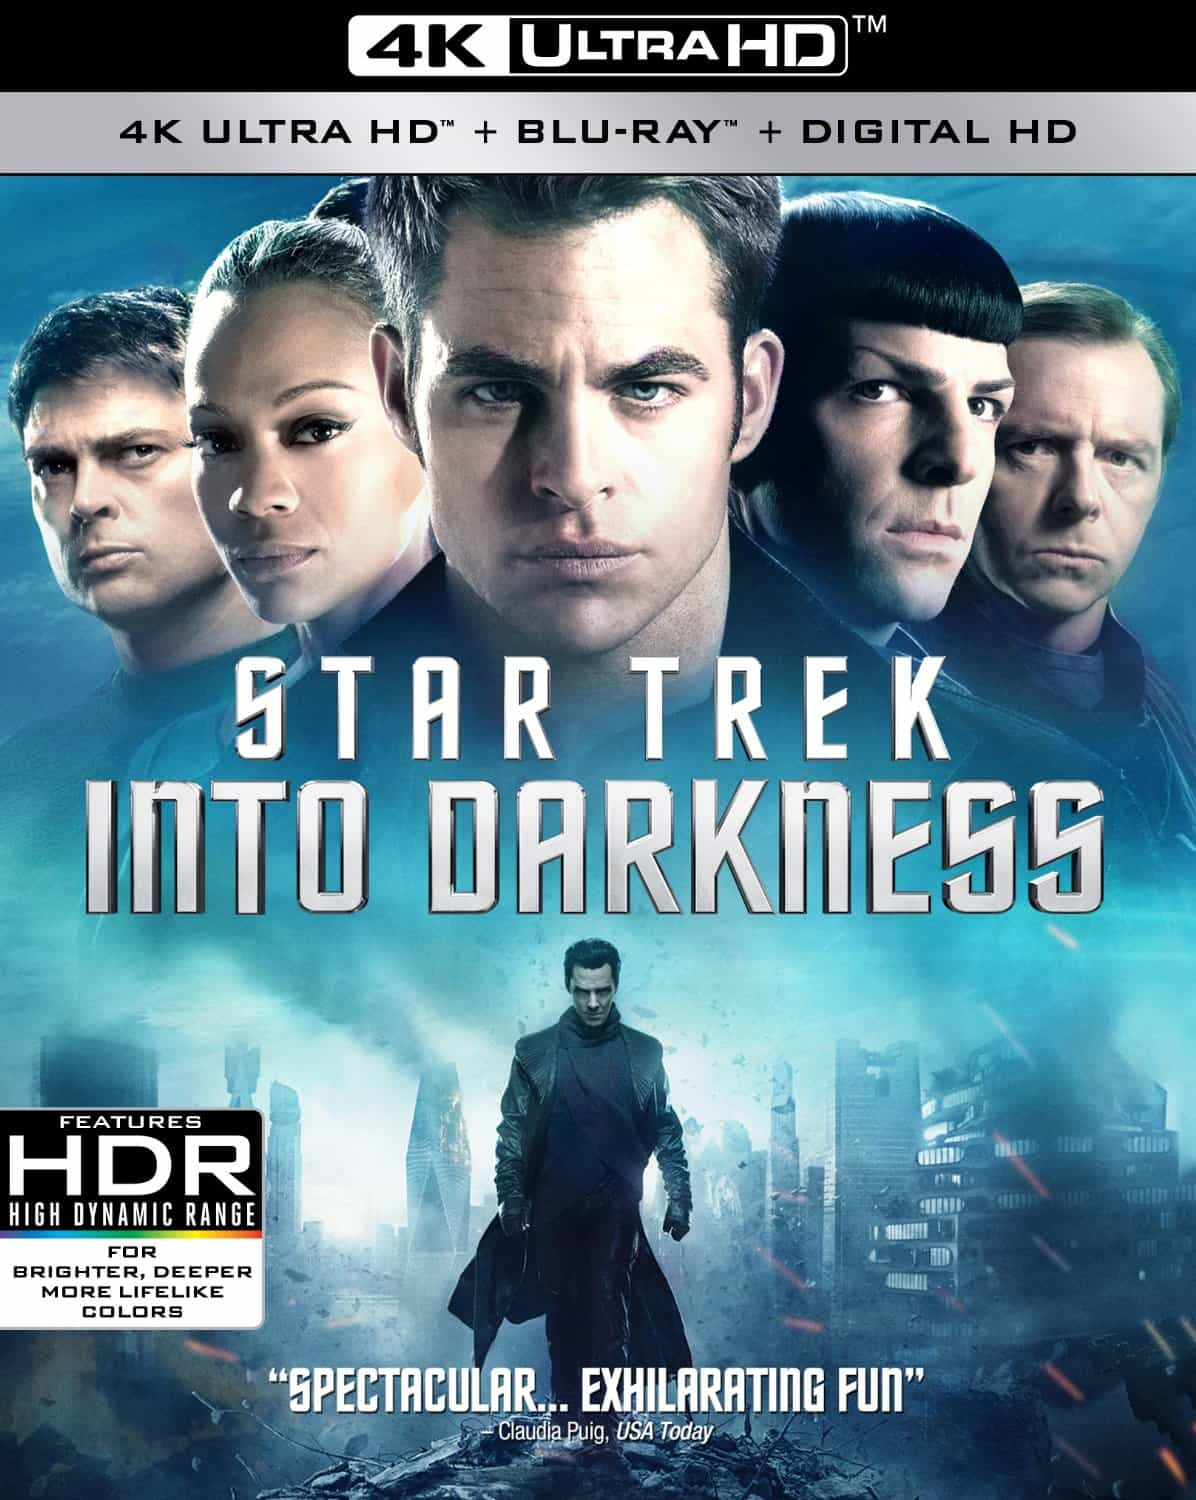 Star Trek Into Darkness 2013 4k Ultra HD 2160p